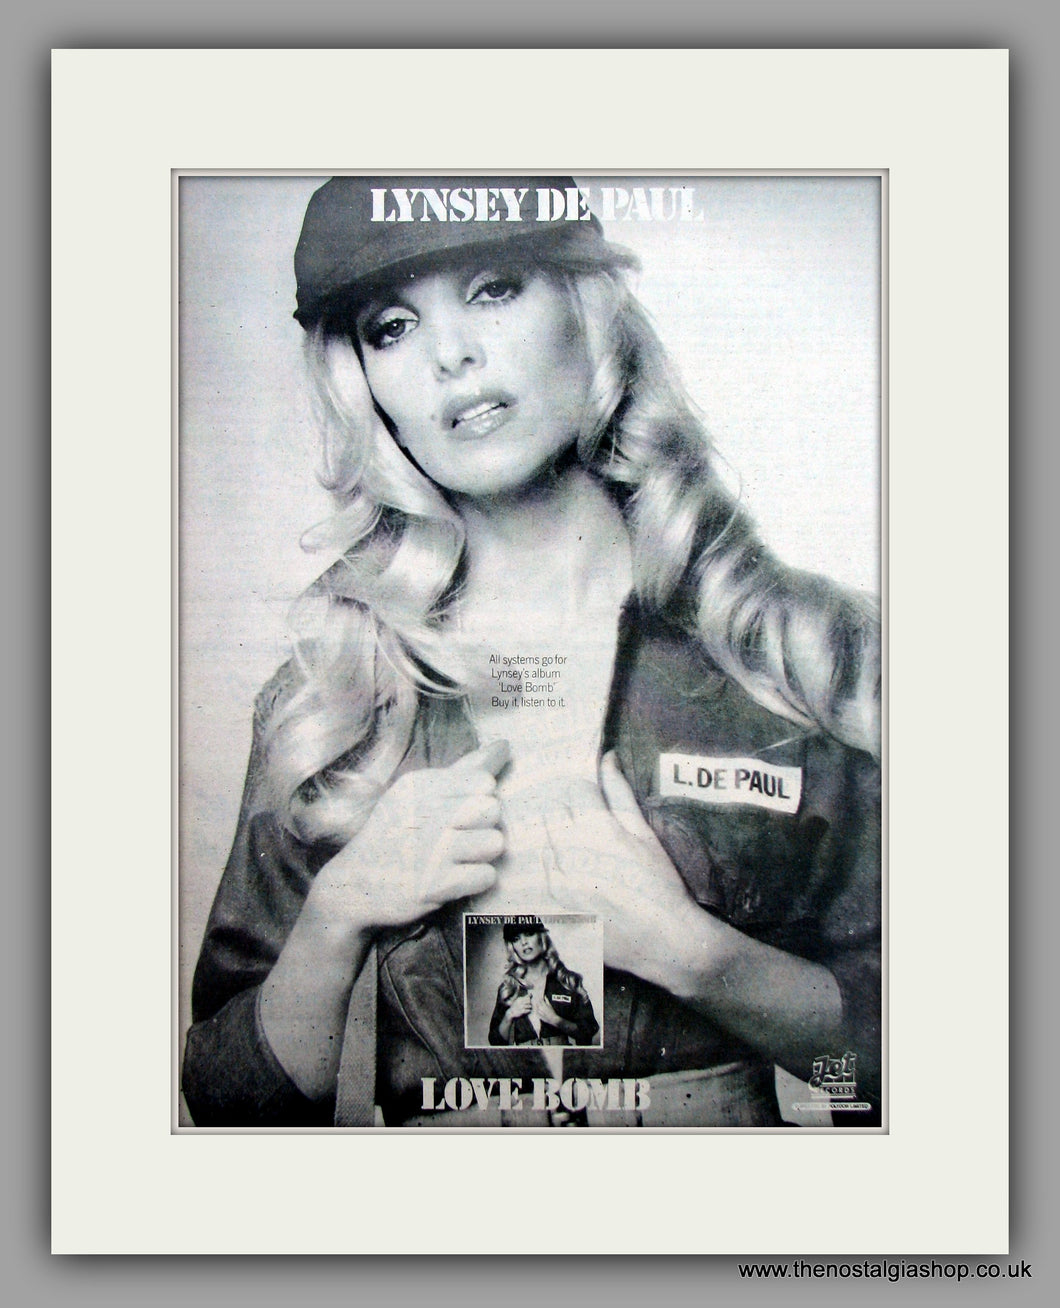 Lynsey De Paul-Love Bomb.  Original Vintage Advert 1975 (ref AD10516)